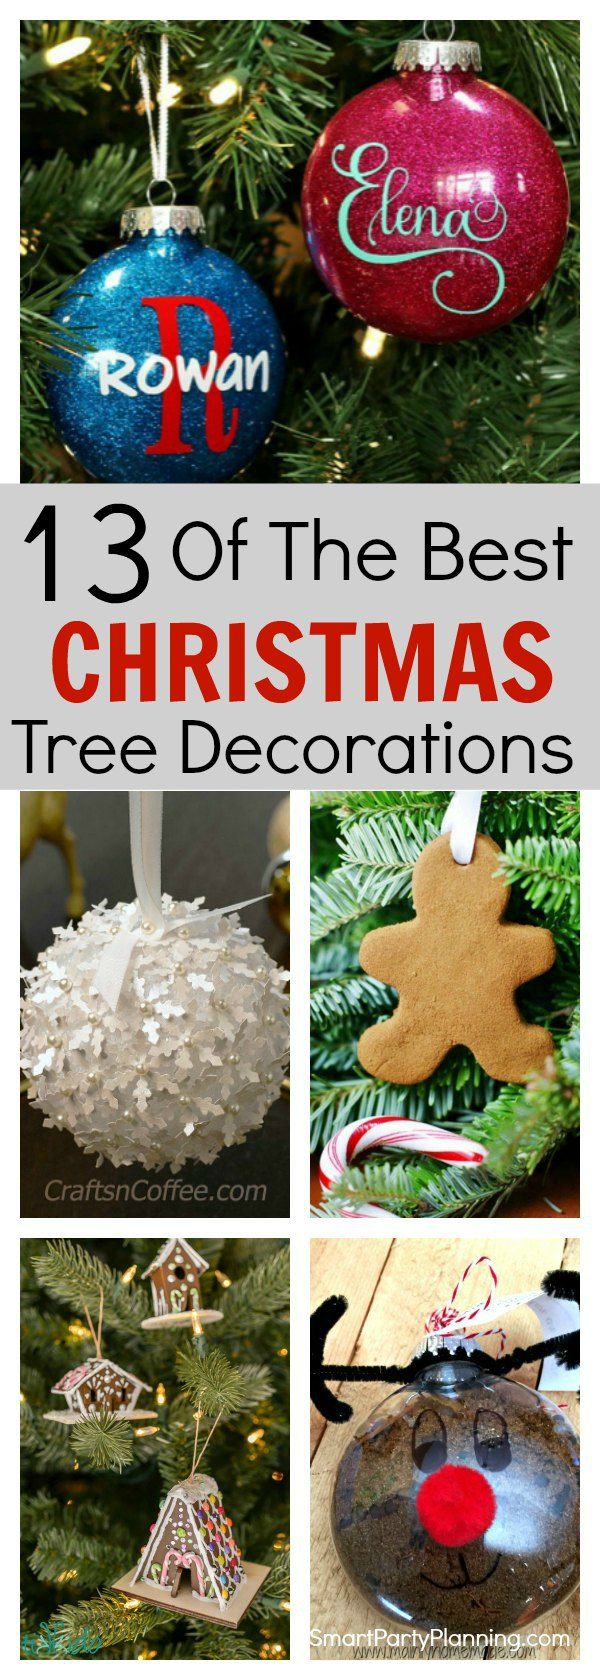 "13 of the best Christmas Tree Decorations"" width=""600"" height=""1680"" data-pin-description=""Why not try your hand at a bit of DIY and create your own Christmas tree decorations this year. This selection is all easy and fun to make, they and are great for kids to get involved in. They will make a fantastic holiday activity which you can enjoy year after year. With different themes to try, there is something that everyone will love."